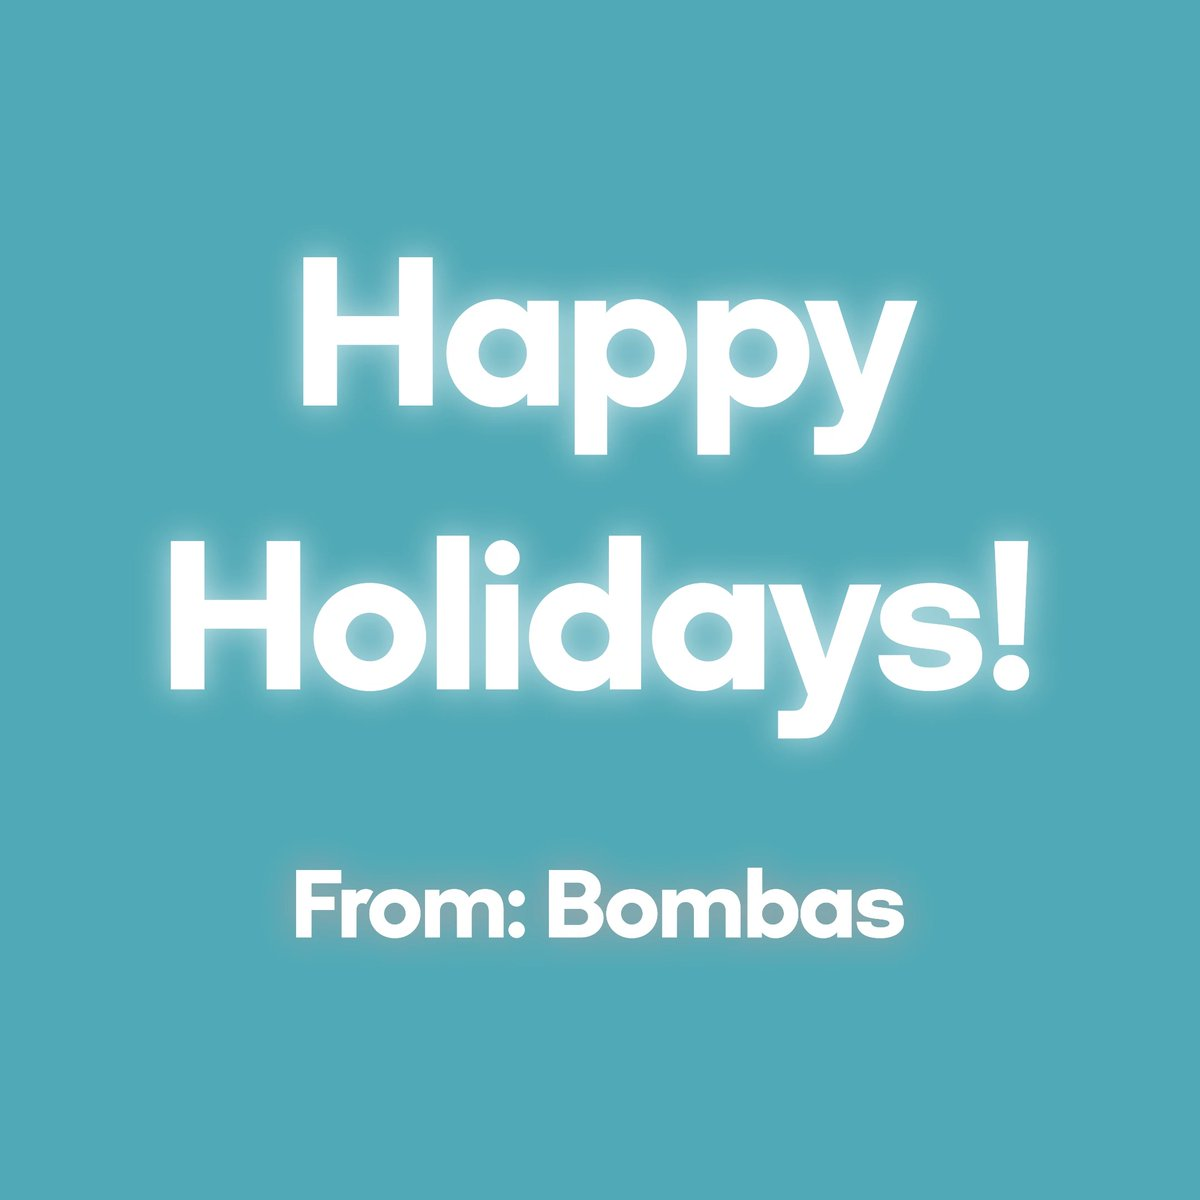 Merry Christmas from all Bombas elves, who work year-round to warm your mistle-toes.